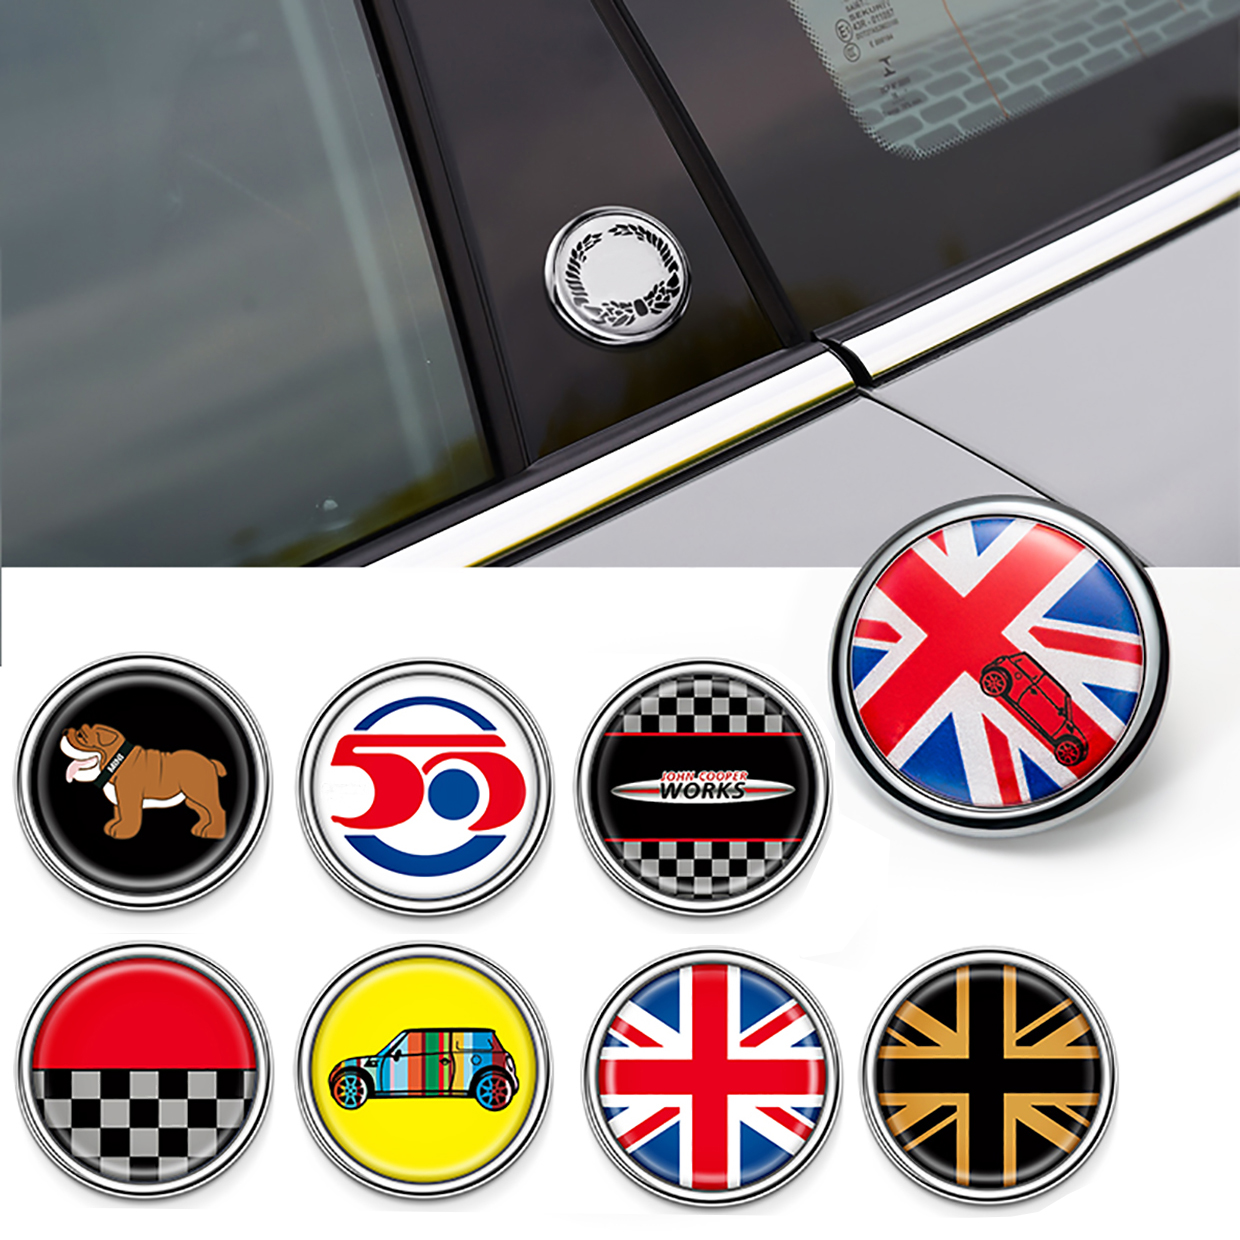 Fashion Union Jack Sticker Decals Window Decor For Mini Cooper One Countryman F55 F56 R55 R56 R60 F60 Car Styling Accessories